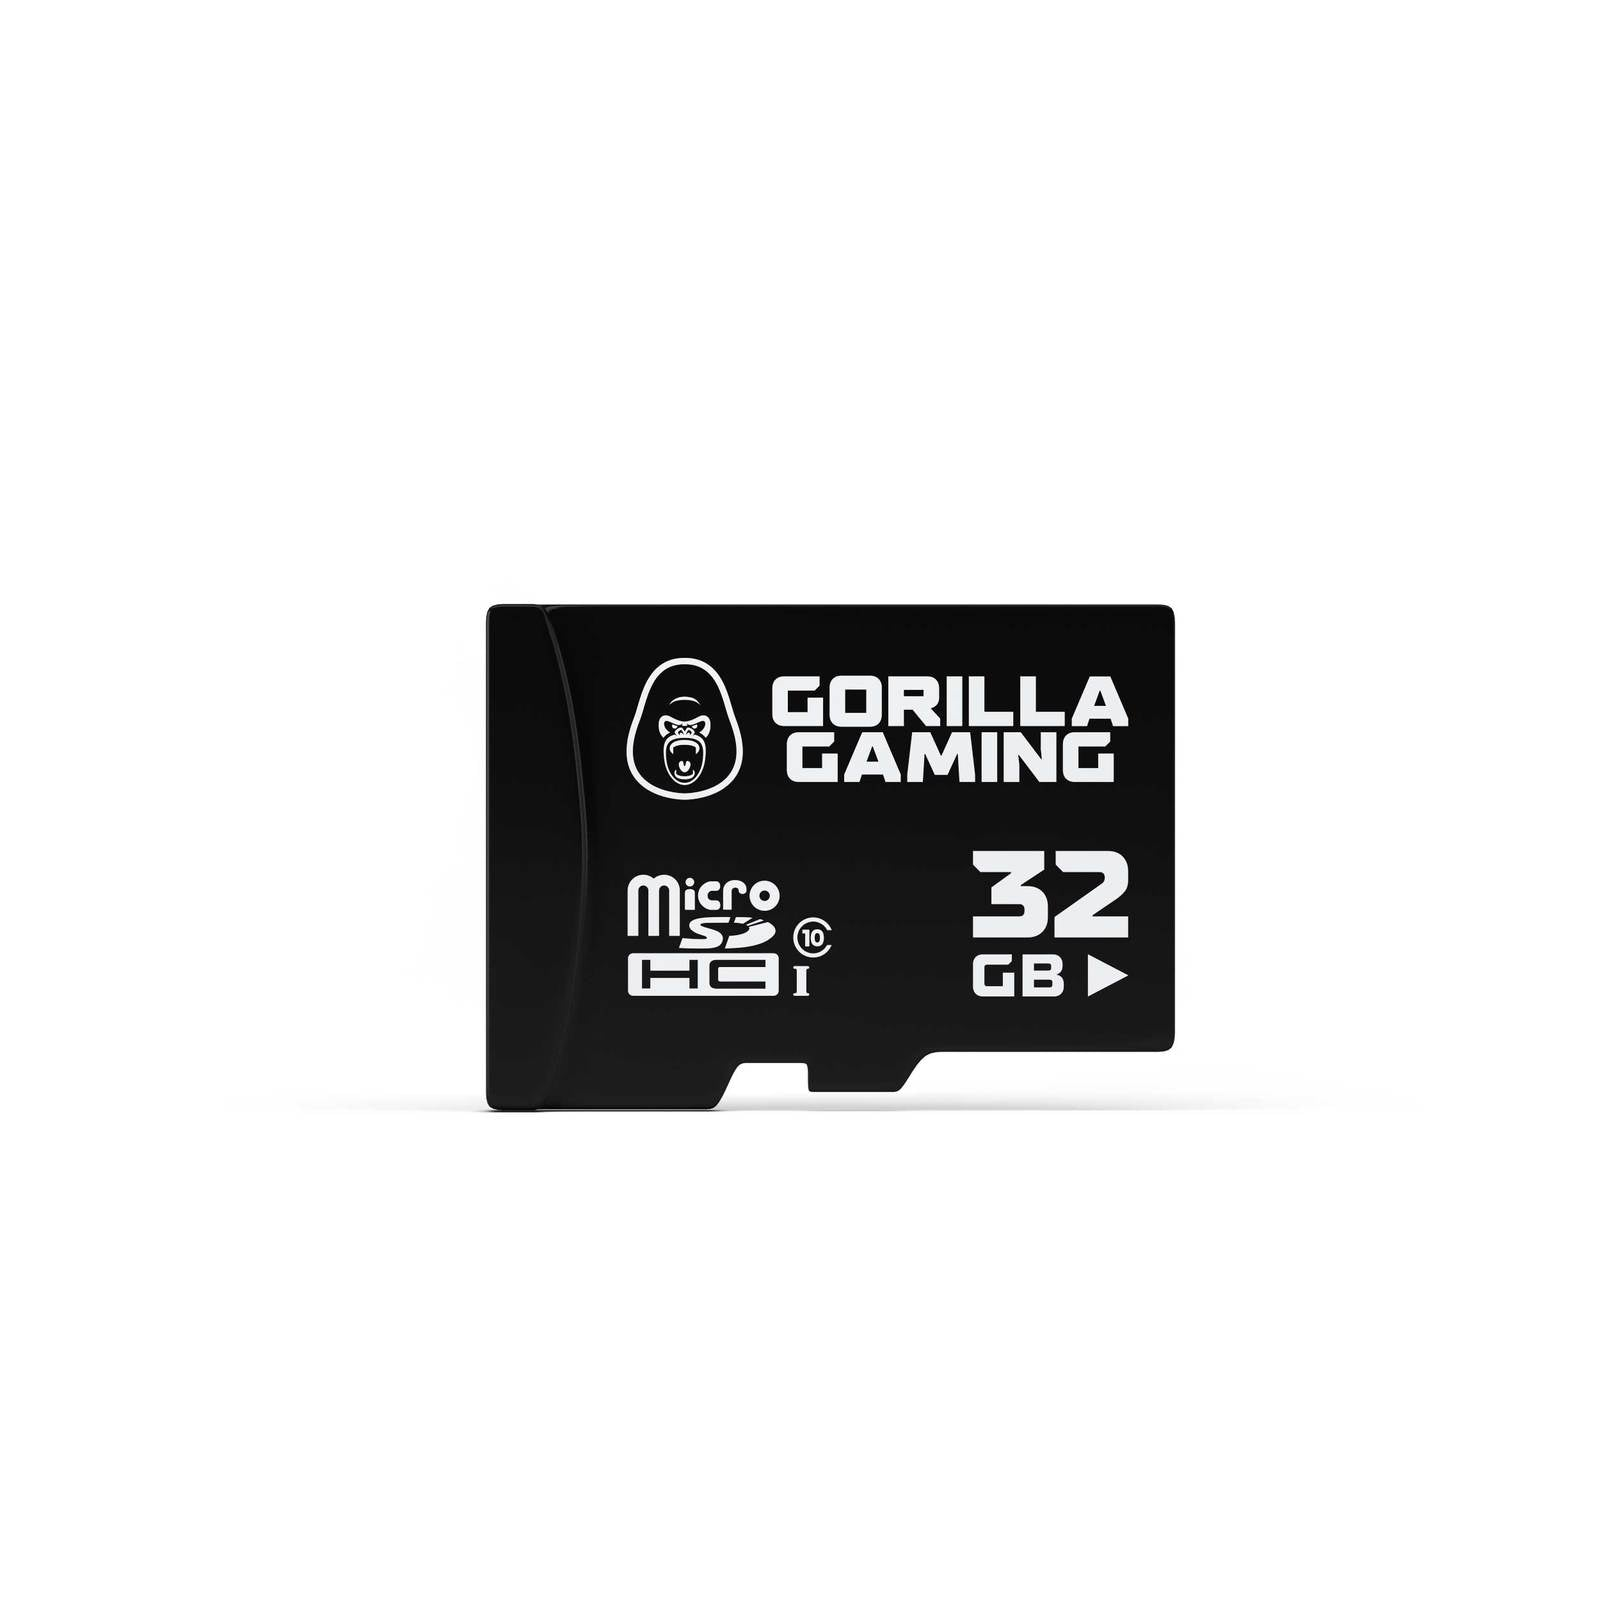 Gorilla Gaming Switch 32GB Memory Card - Nintendo Switch